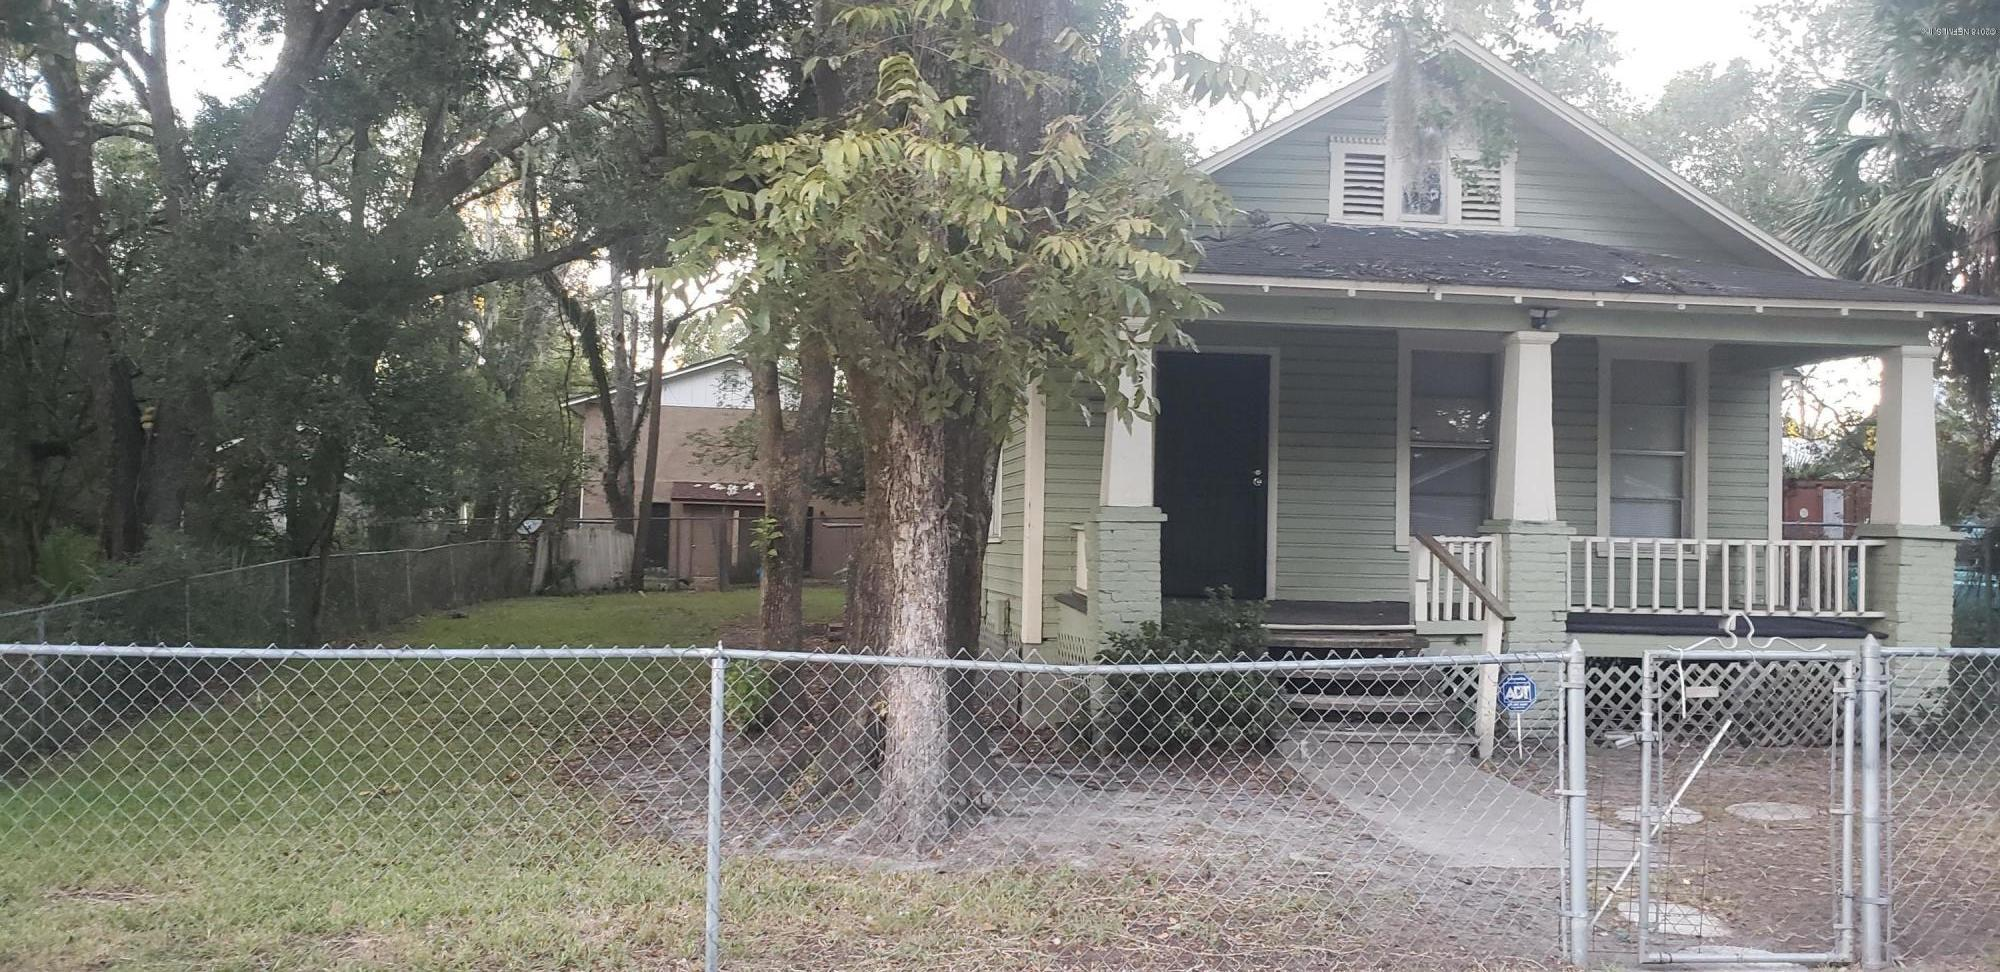 673 28TH, JACKSONVILLE, FLORIDA 32206, 2 Bedrooms Bedrooms, ,1 BathroomBathrooms,Residential - single family,For sale,28TH,965193